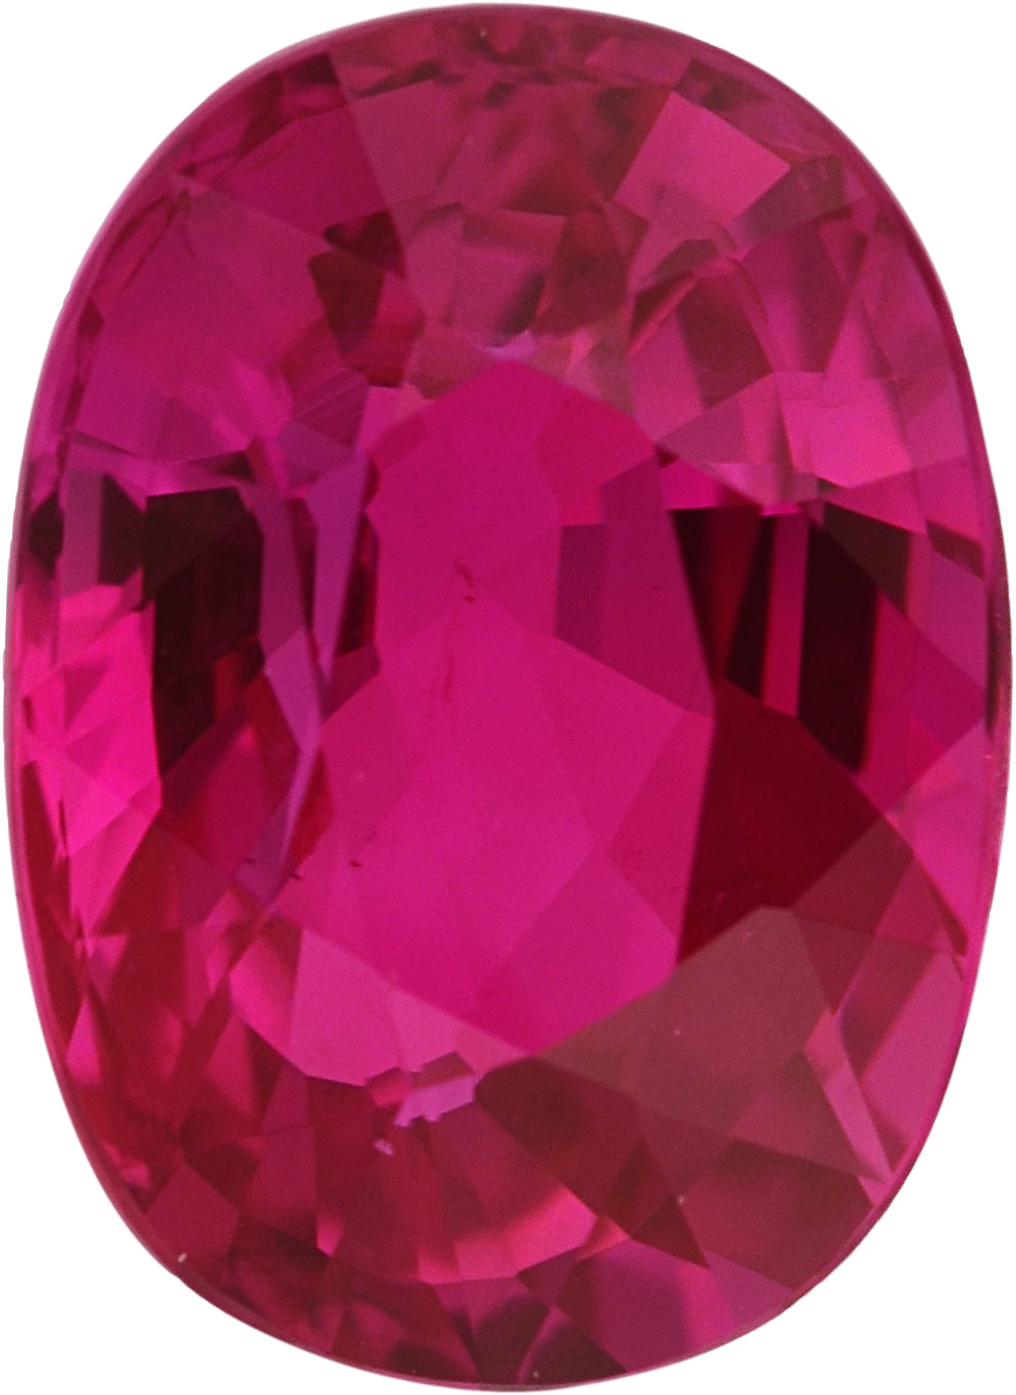 Loose  Untreated Ruby Loose Gem in Oval Cut, Vibrant Purple Red, 6.64 x 4.82  mm, 1.04 Carats